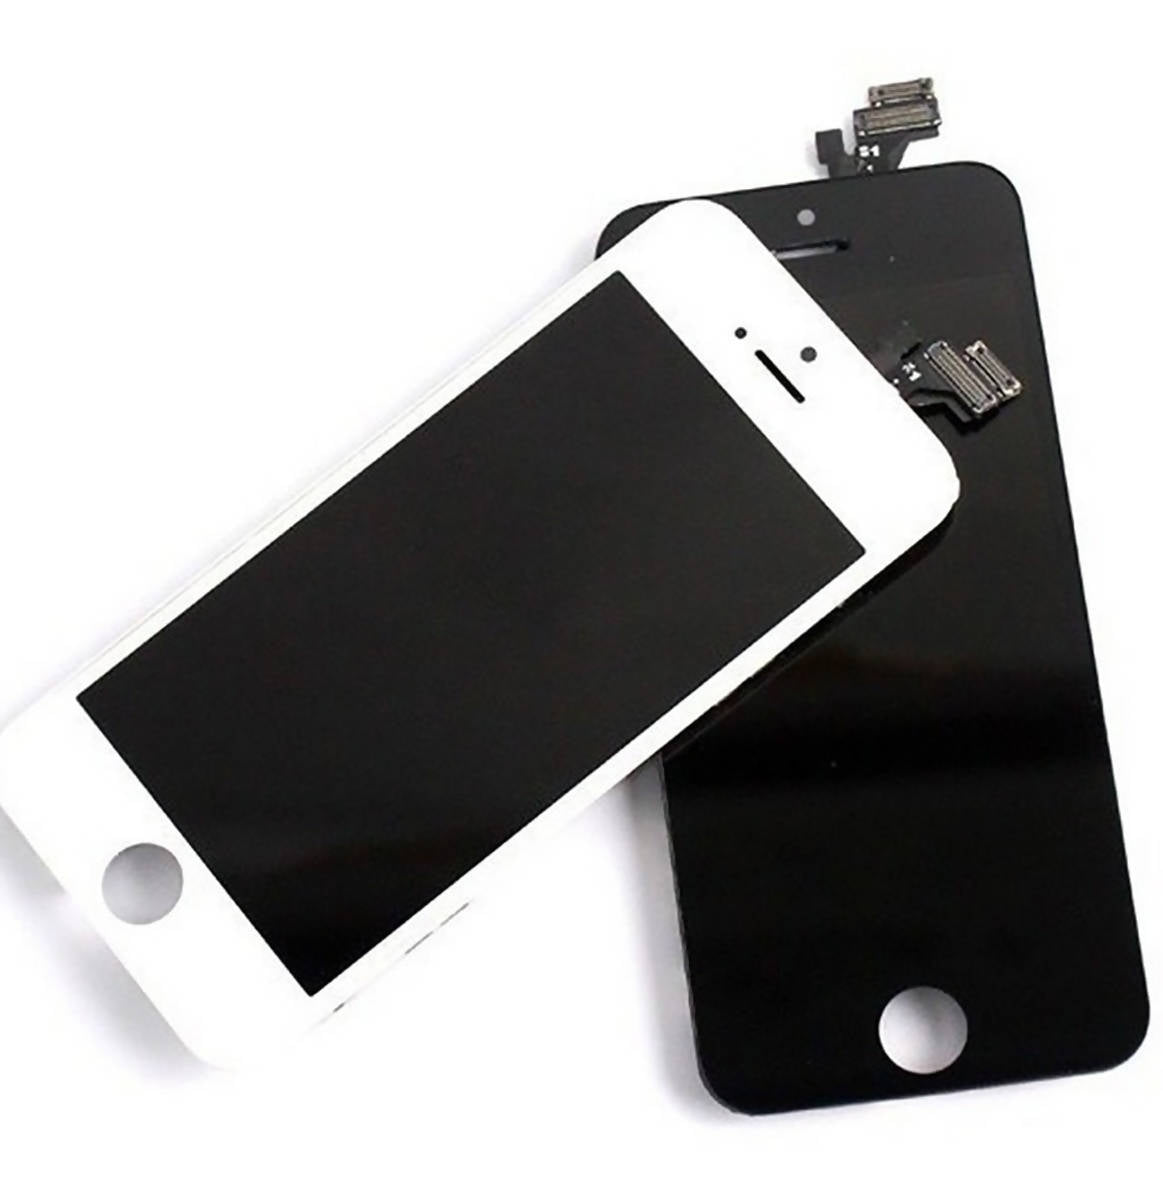 Pantalla display original Iphone 5S - APE-Plazas